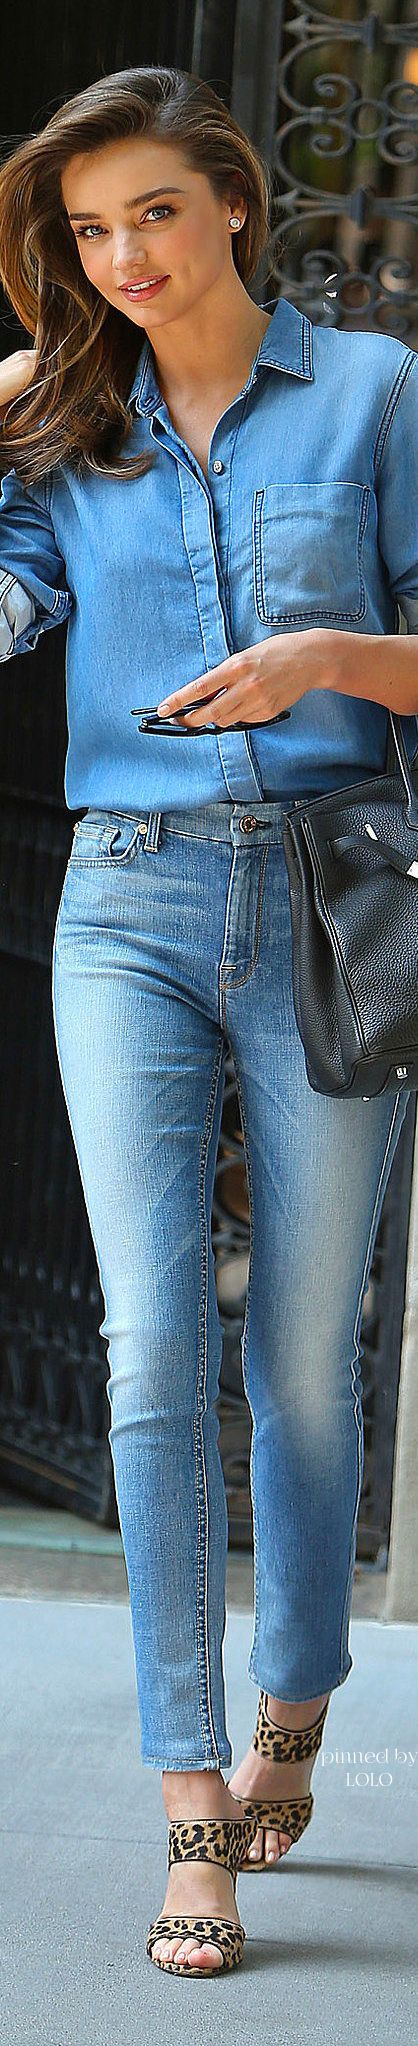 Australian model Miranda Kerr in a Jeans ensemble - so sophisticated yet casual